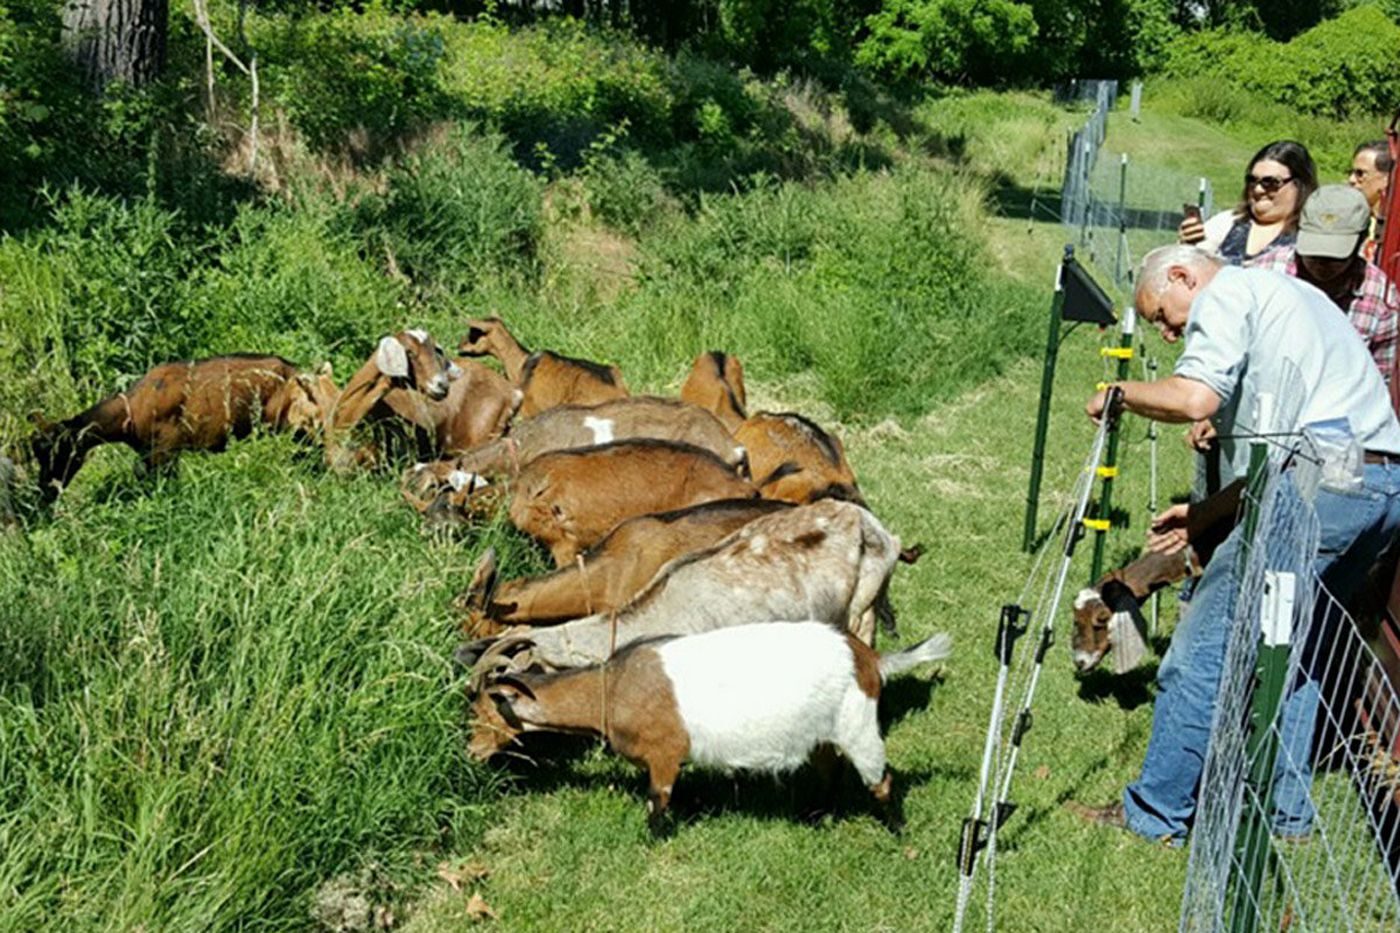 Goats, sheep maintain land in some Philly suburbs  Yes, you